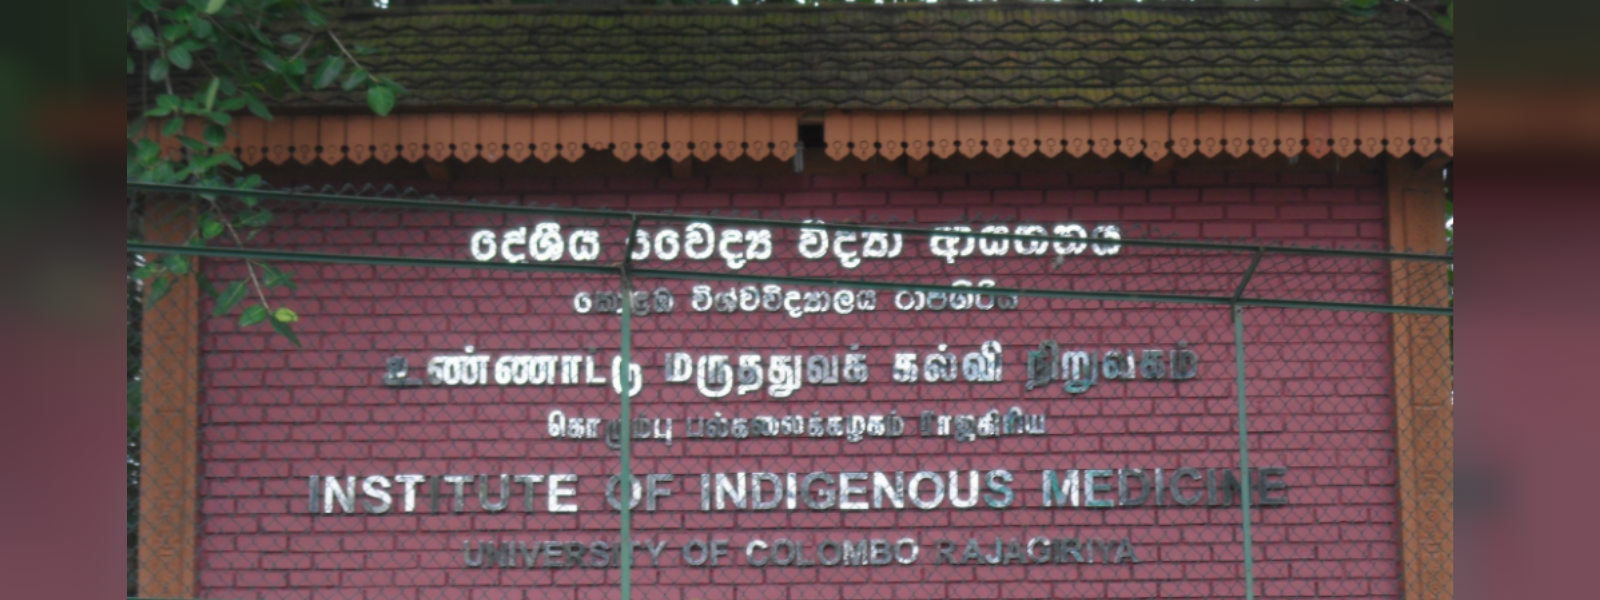 Indigenous Medicine institute of Colombo University shuts down